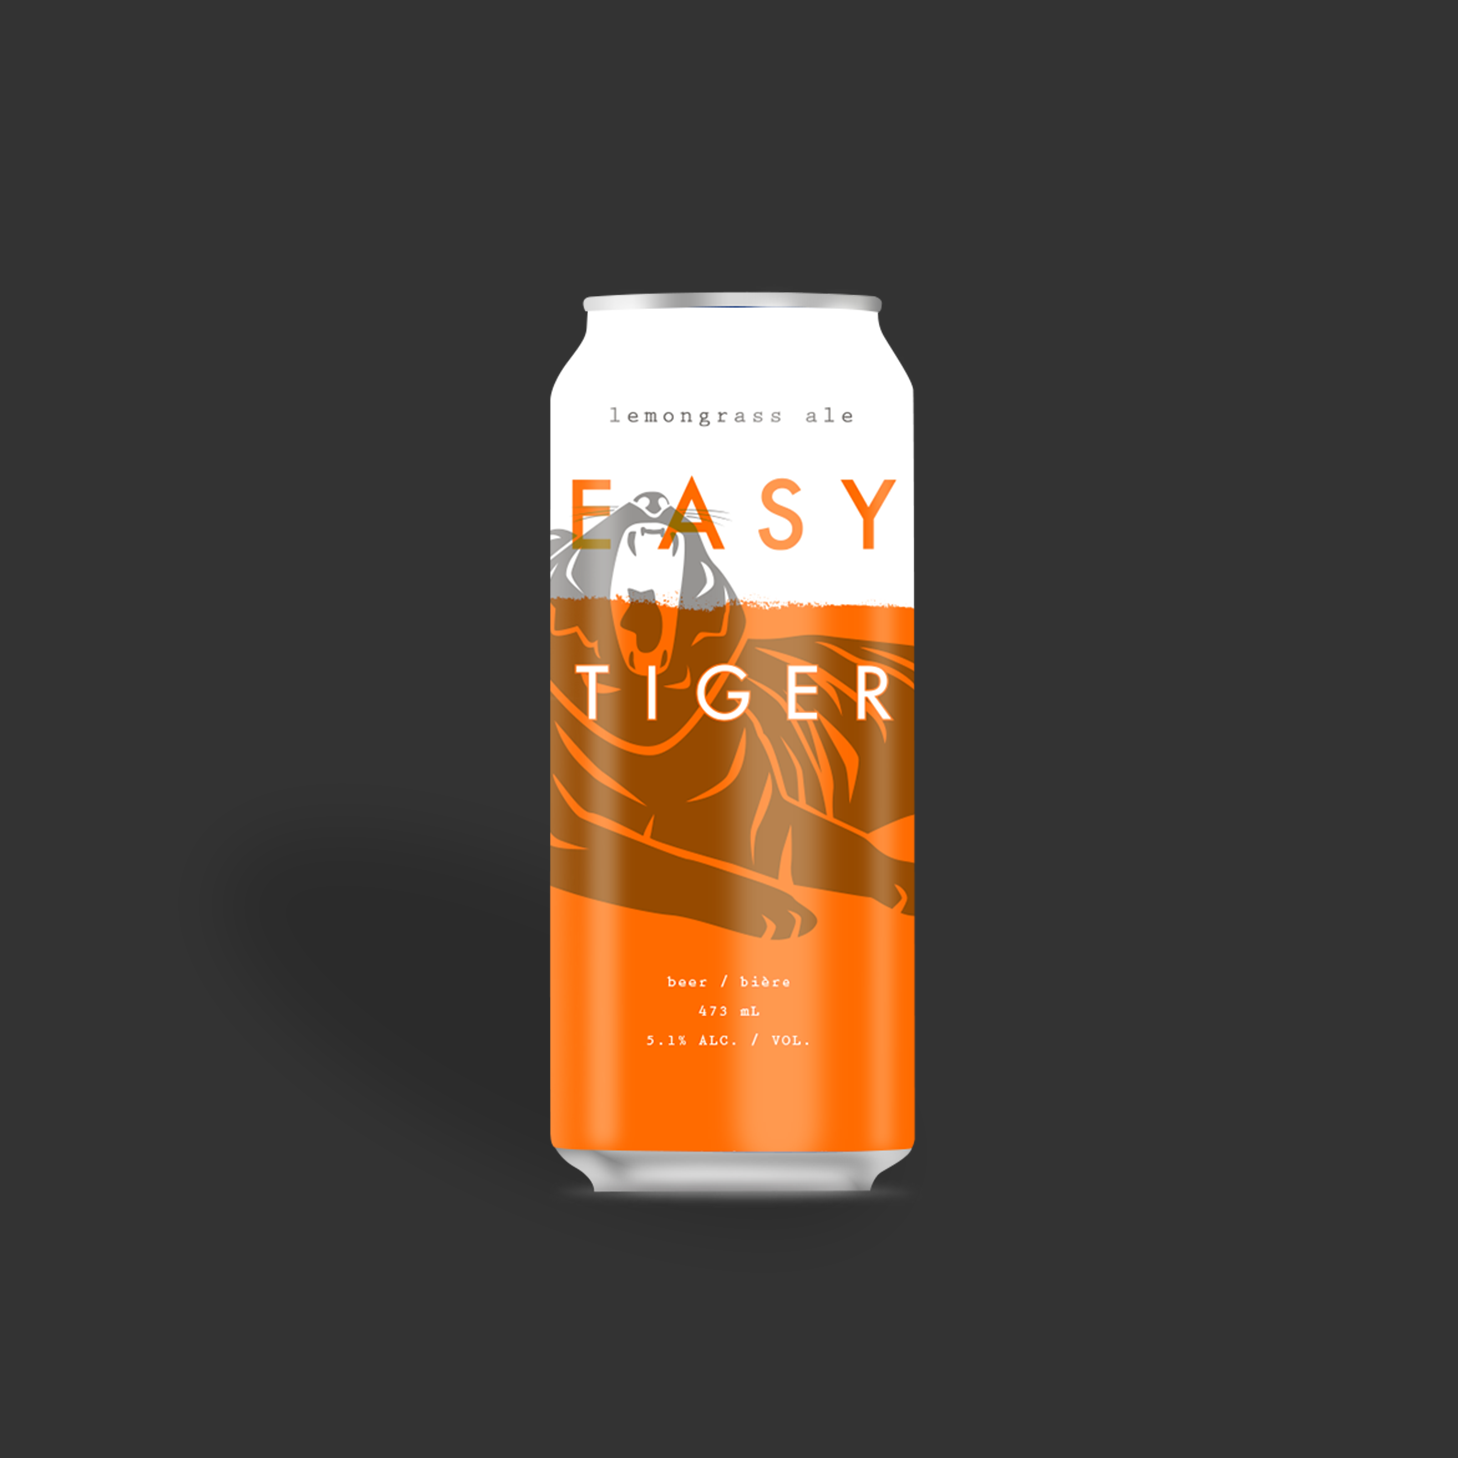 Easy Tiger Lemongrass Ale